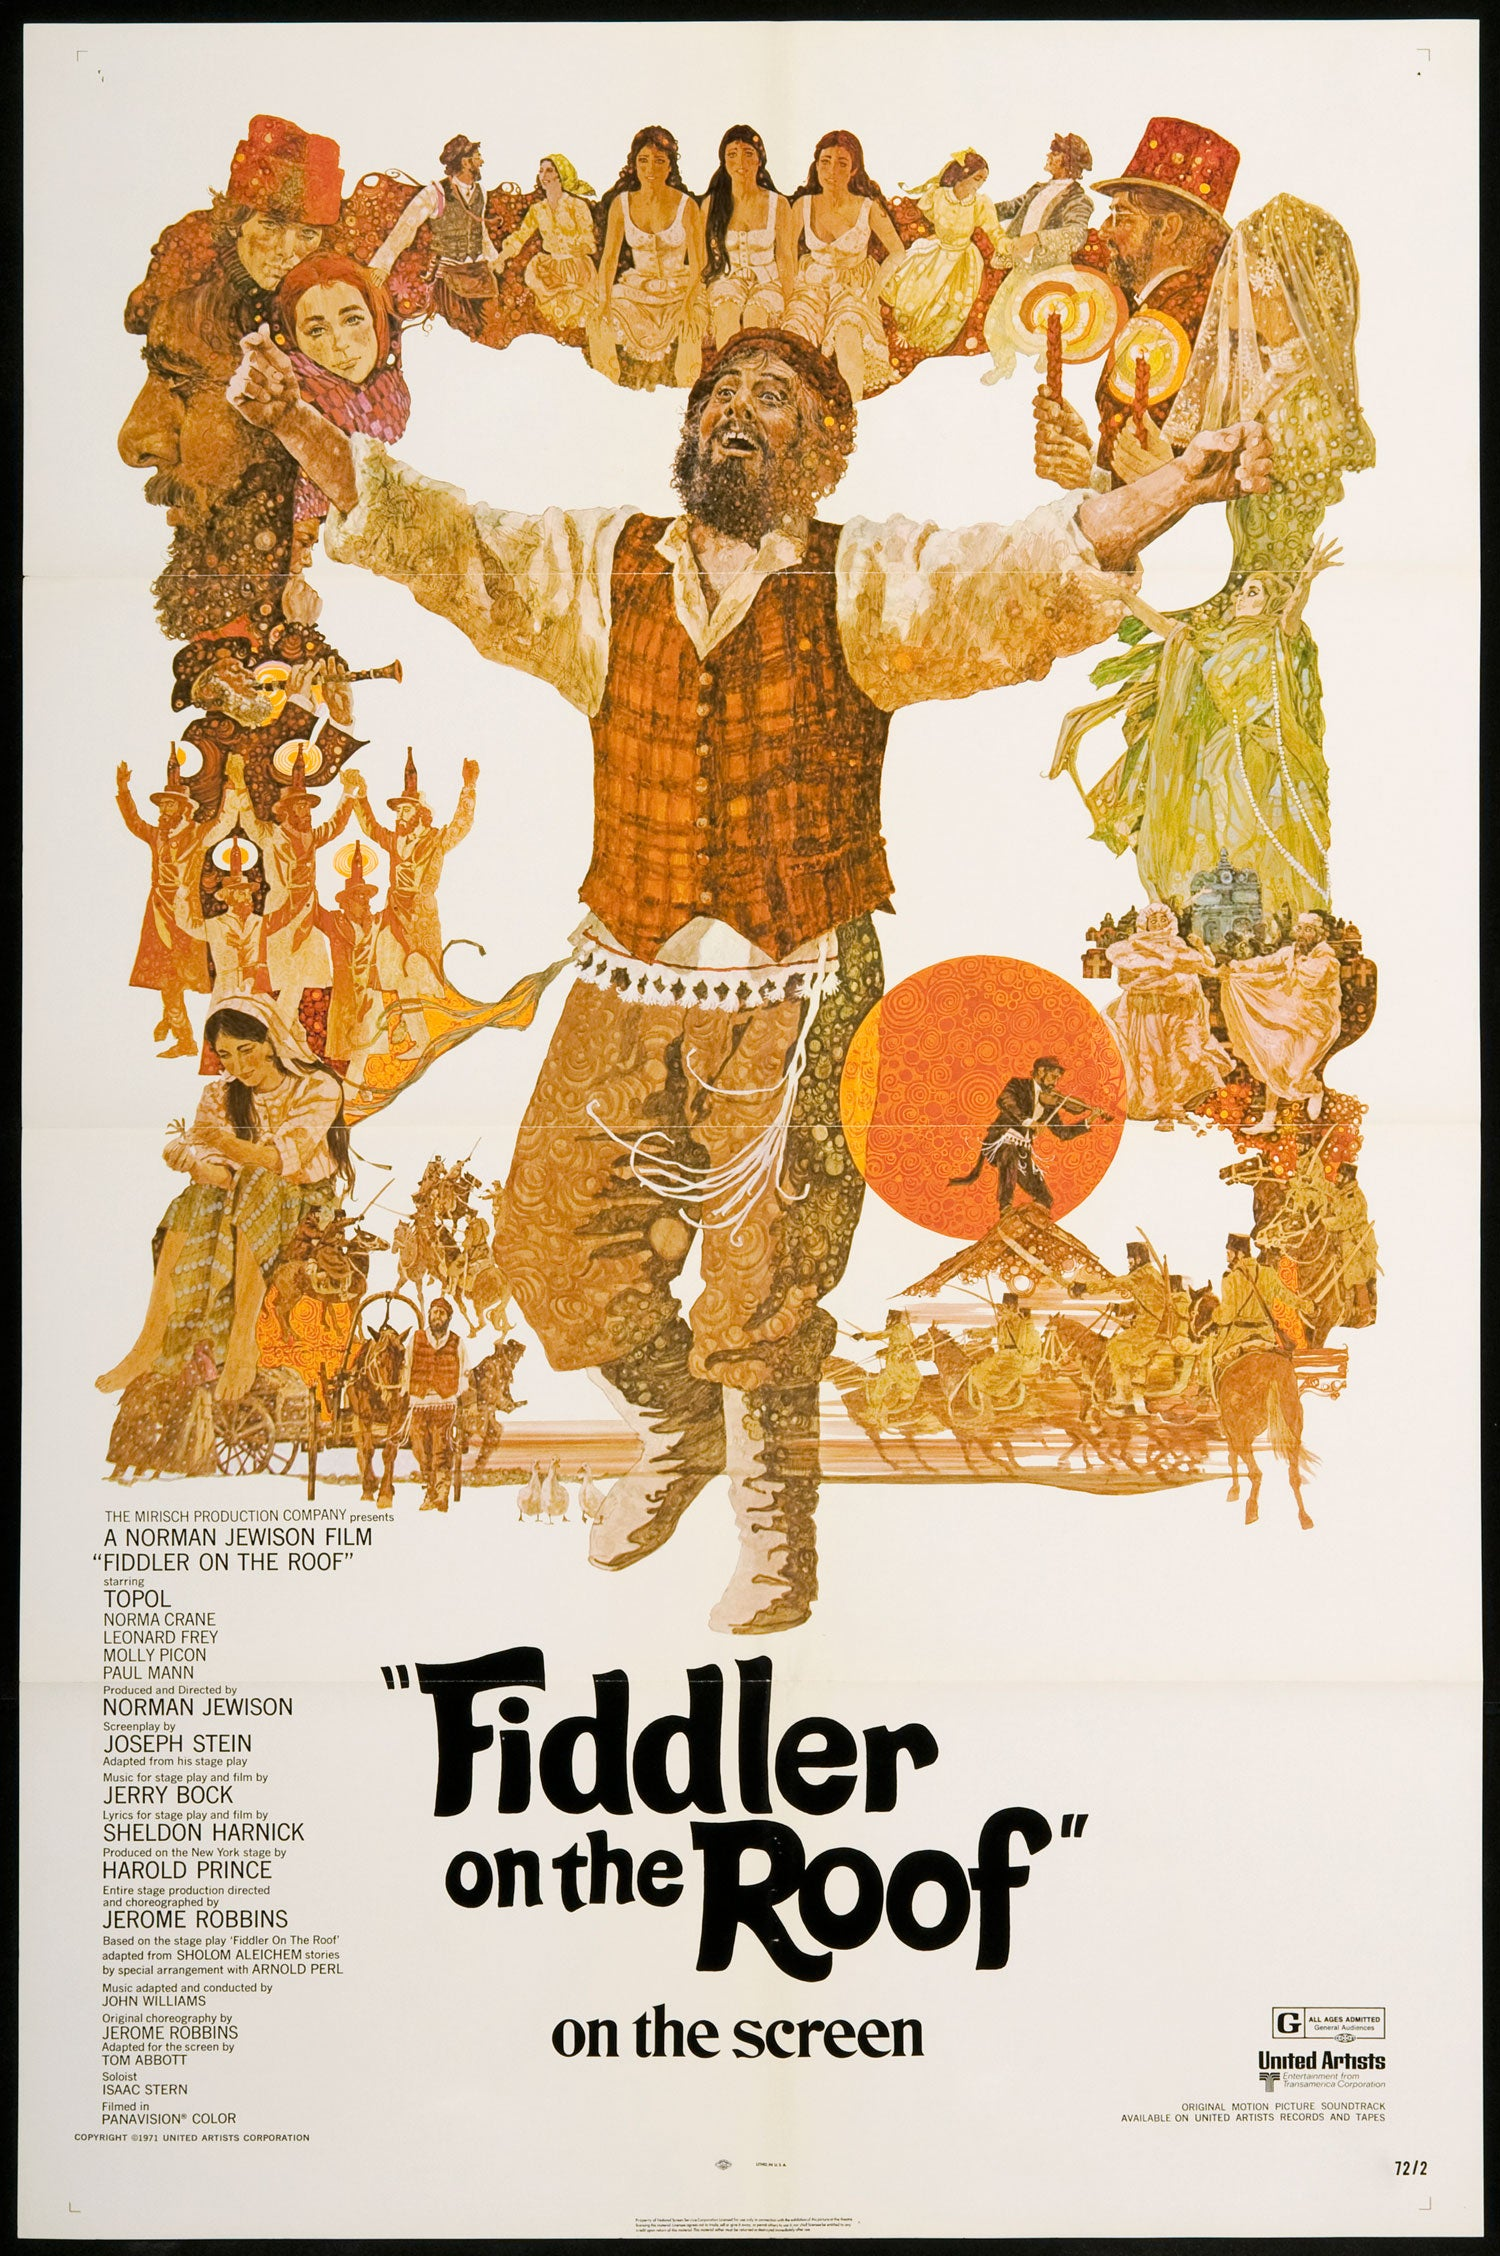 Interesting. Fiddler on the fucking roof the